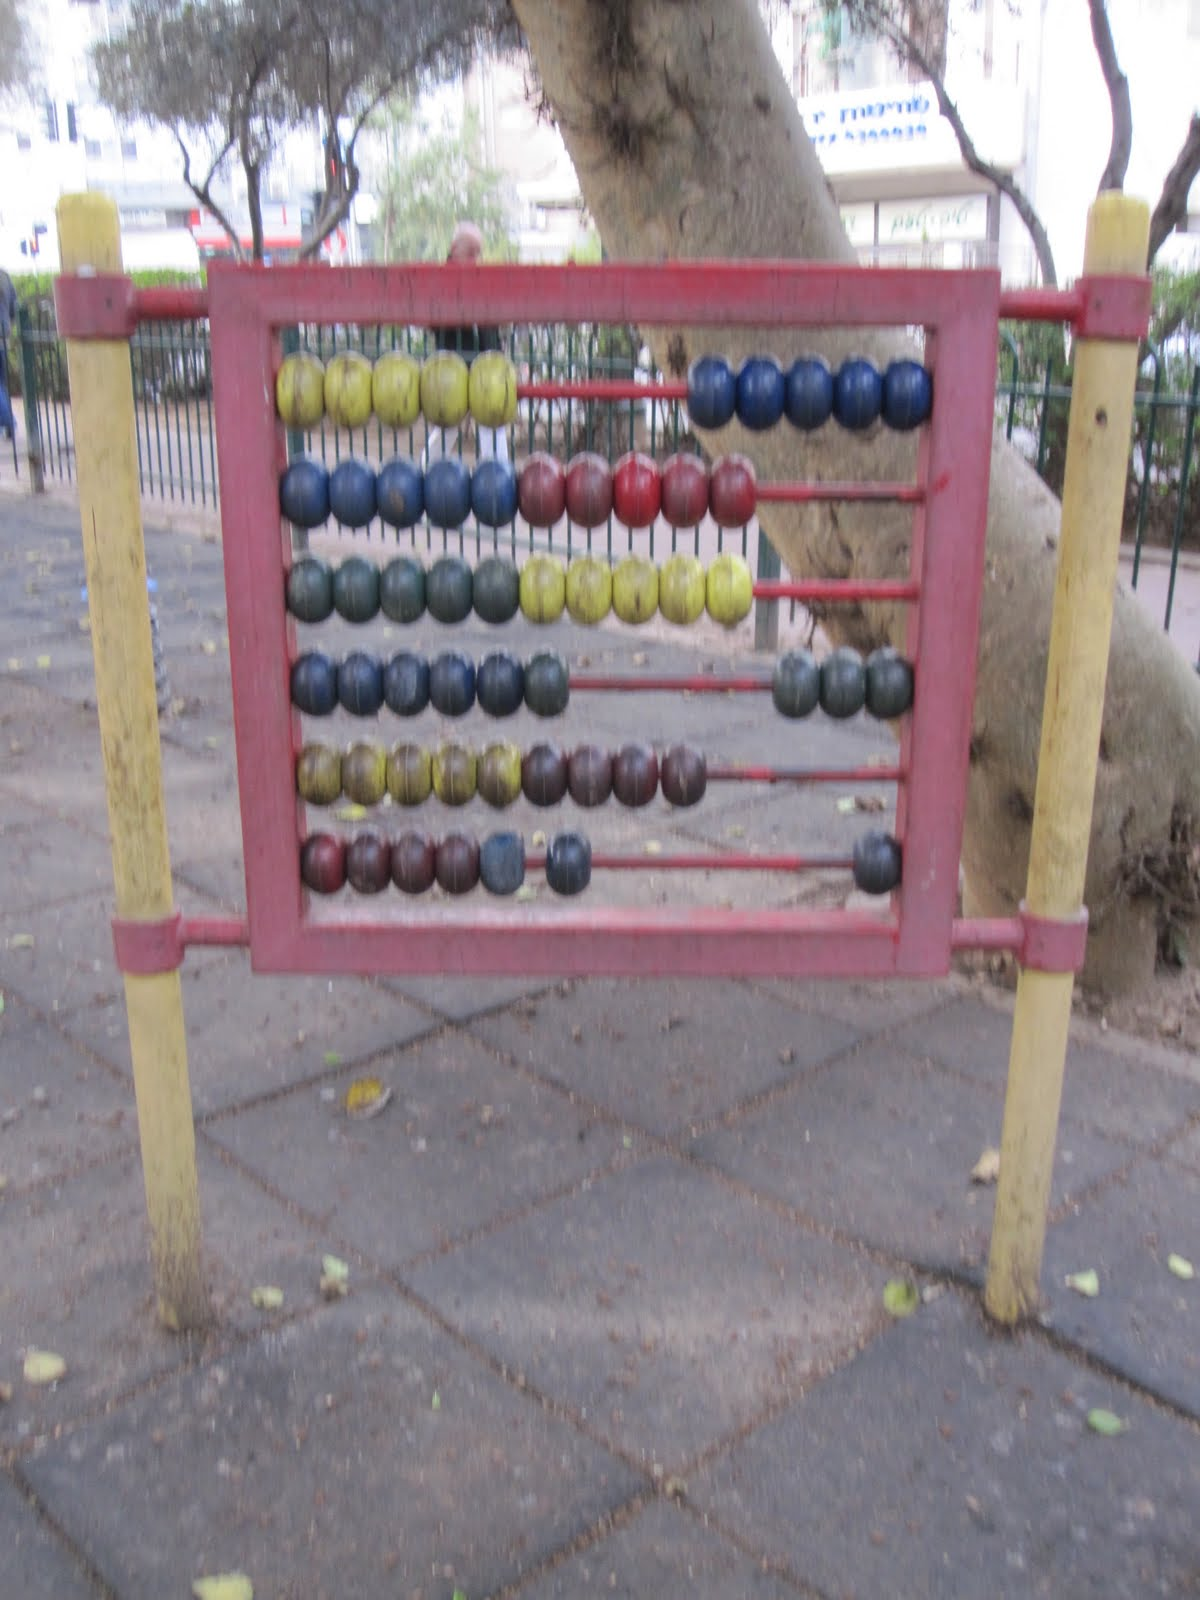 Giant abacus at the playground